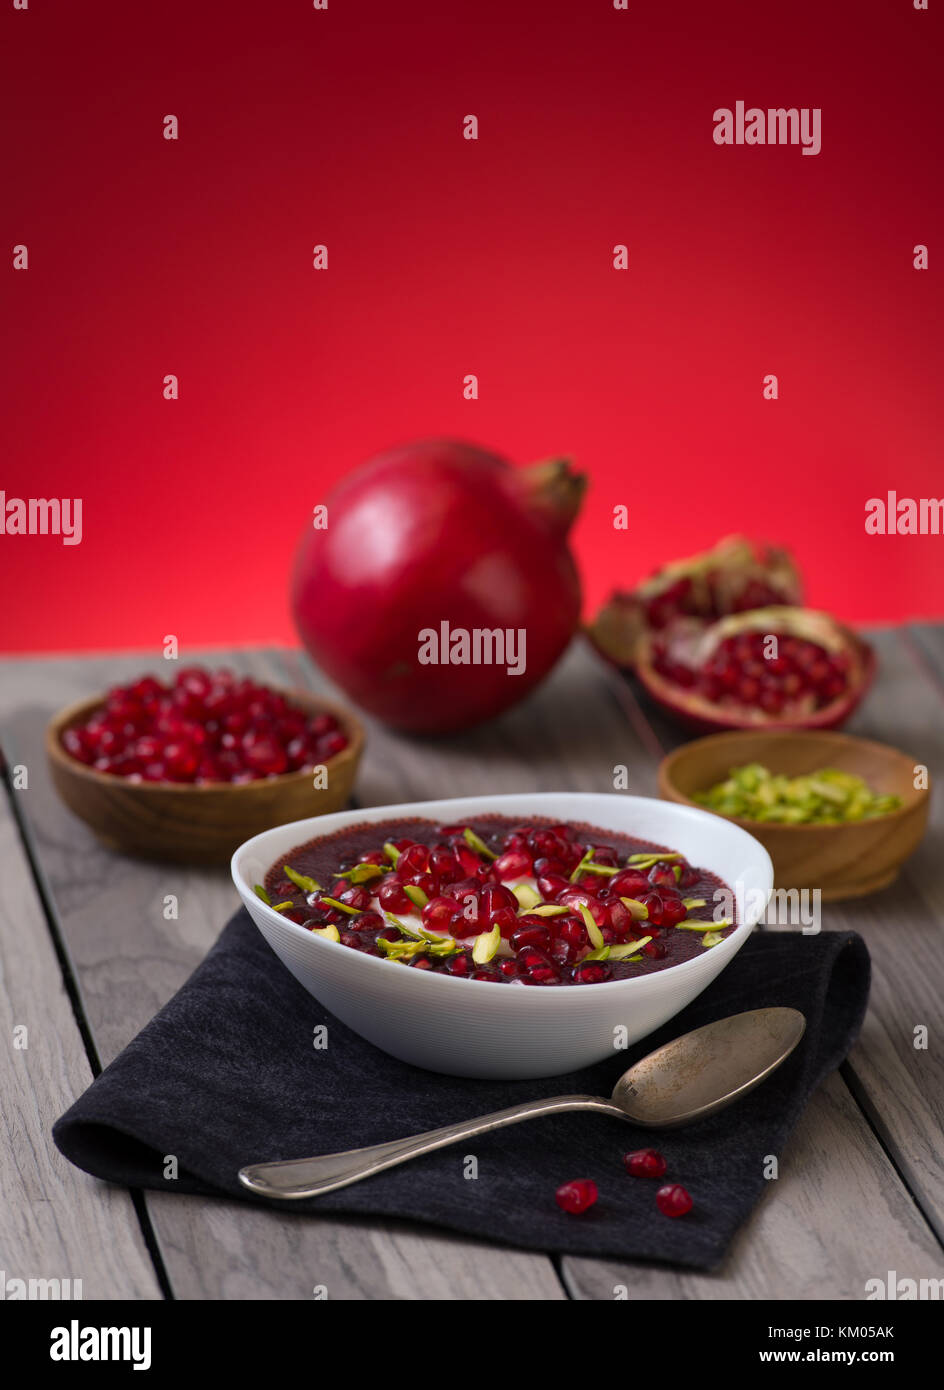 Pomegranate desert with pistachios, Chia Seed, tapioca pudding and Yogurt. healthy eating. red copy space. - Stock Image